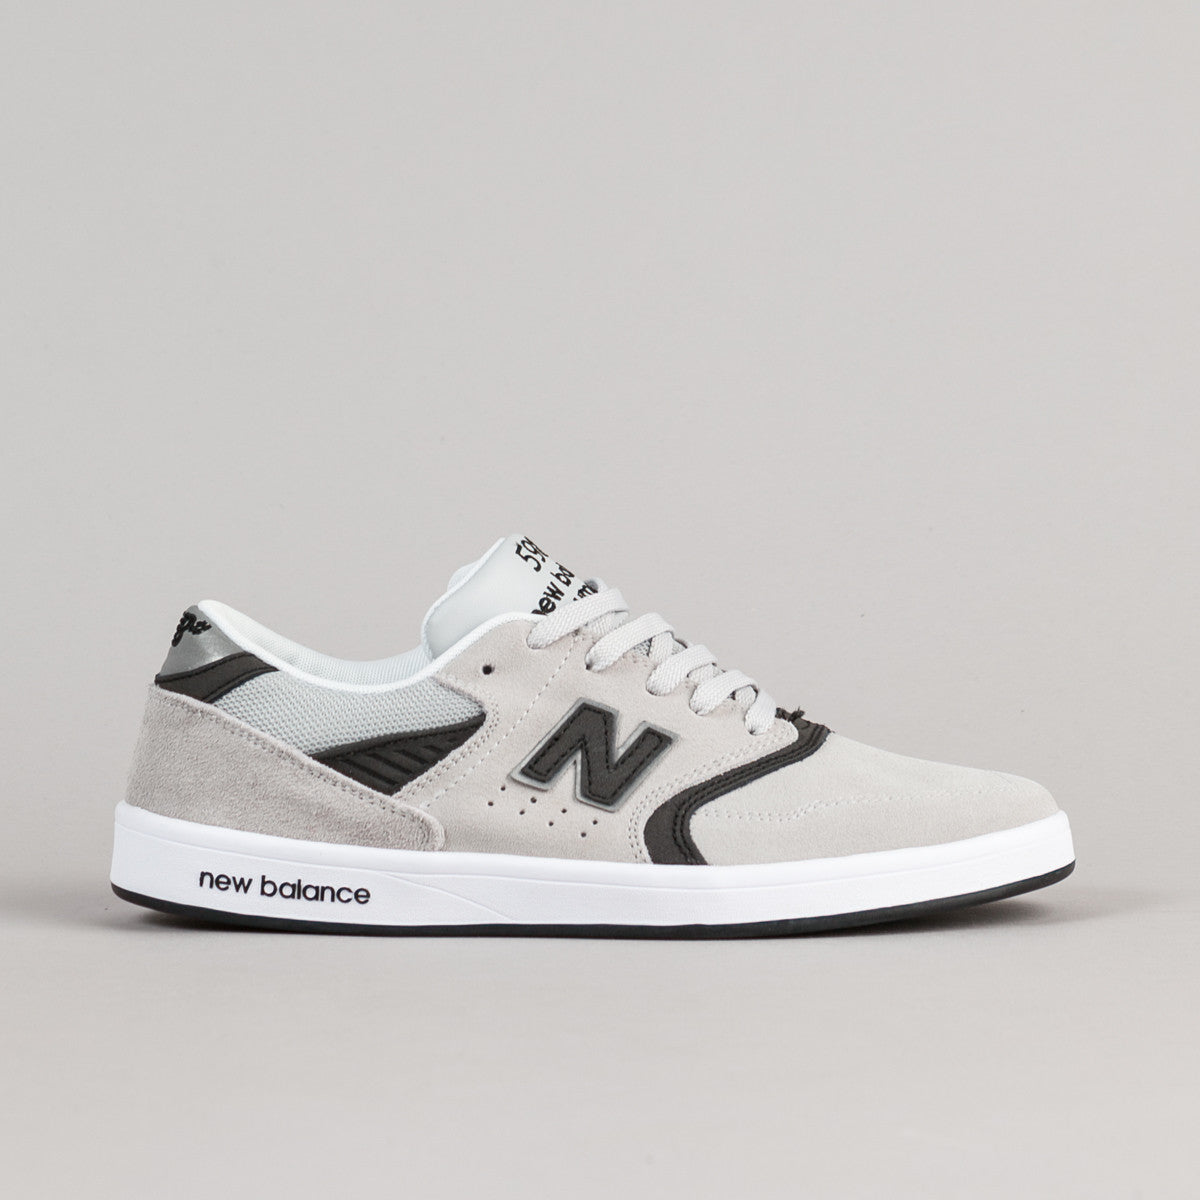 New Balance Numeric 598 Shoes - Micro Chip